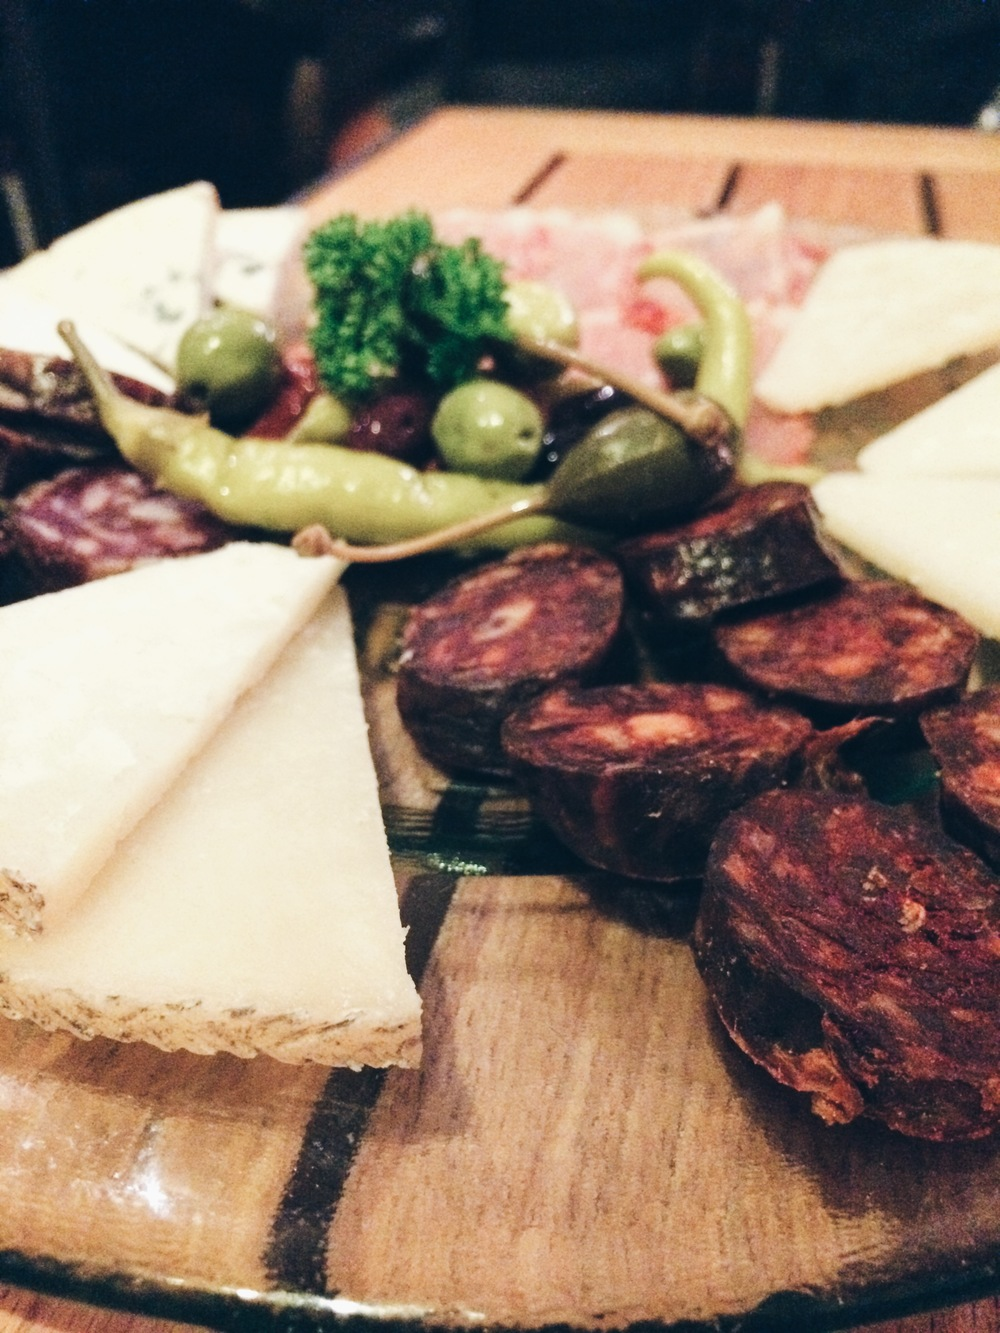 A board of cheeses and cured meats at 13%, Palma de Mallorca